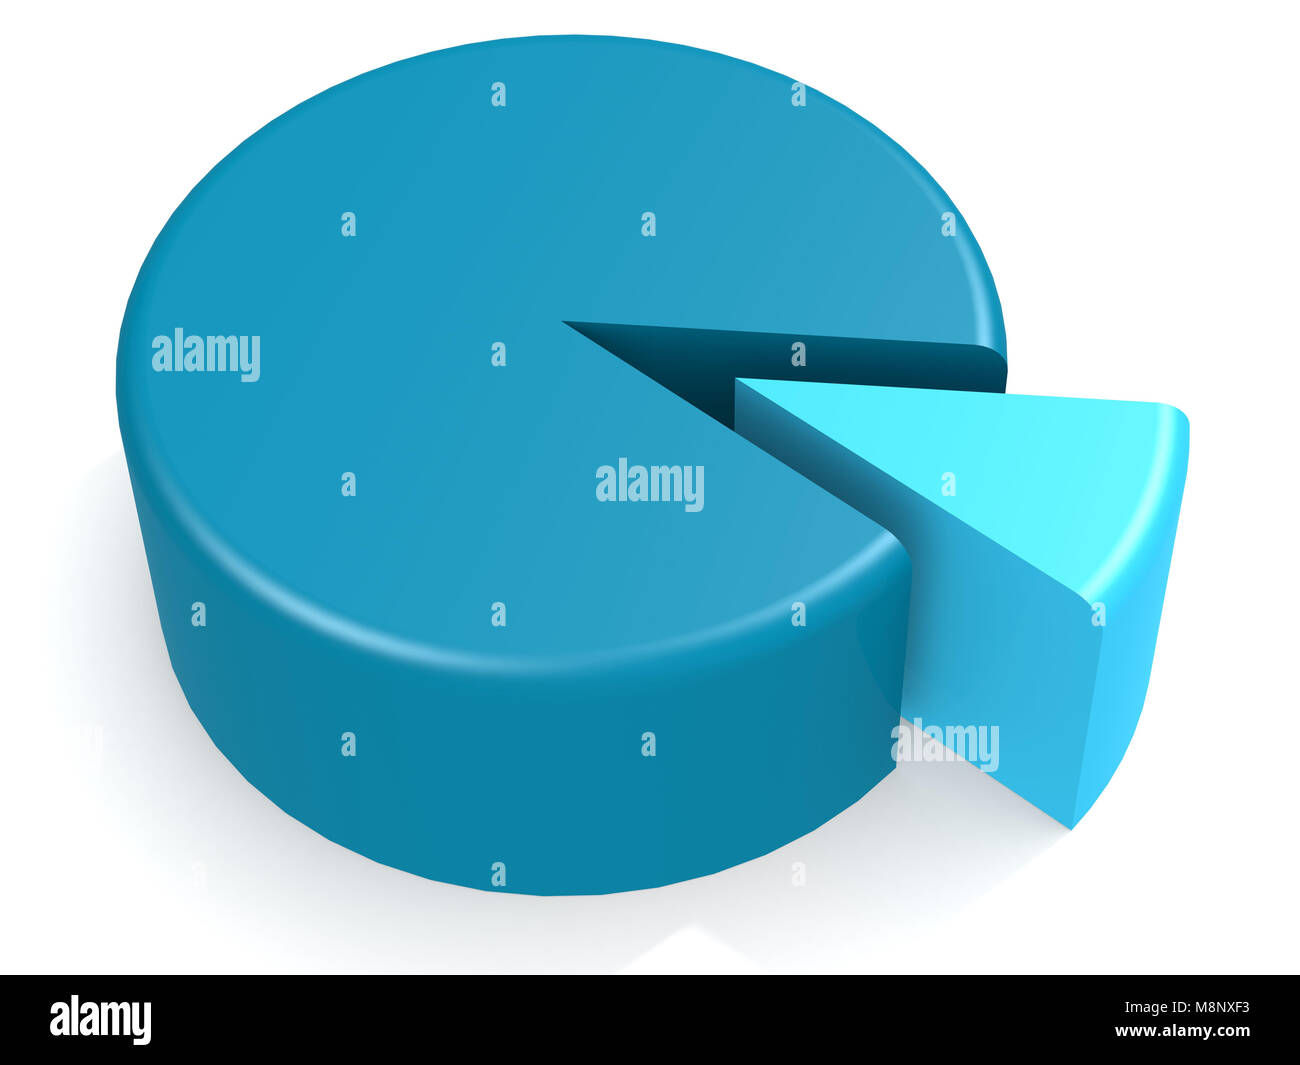 Blue pie chart stock photos blue pie chart stock images alamy blue pie chart with 10 percent 3d rendering stock image nvjuhfo Gallery